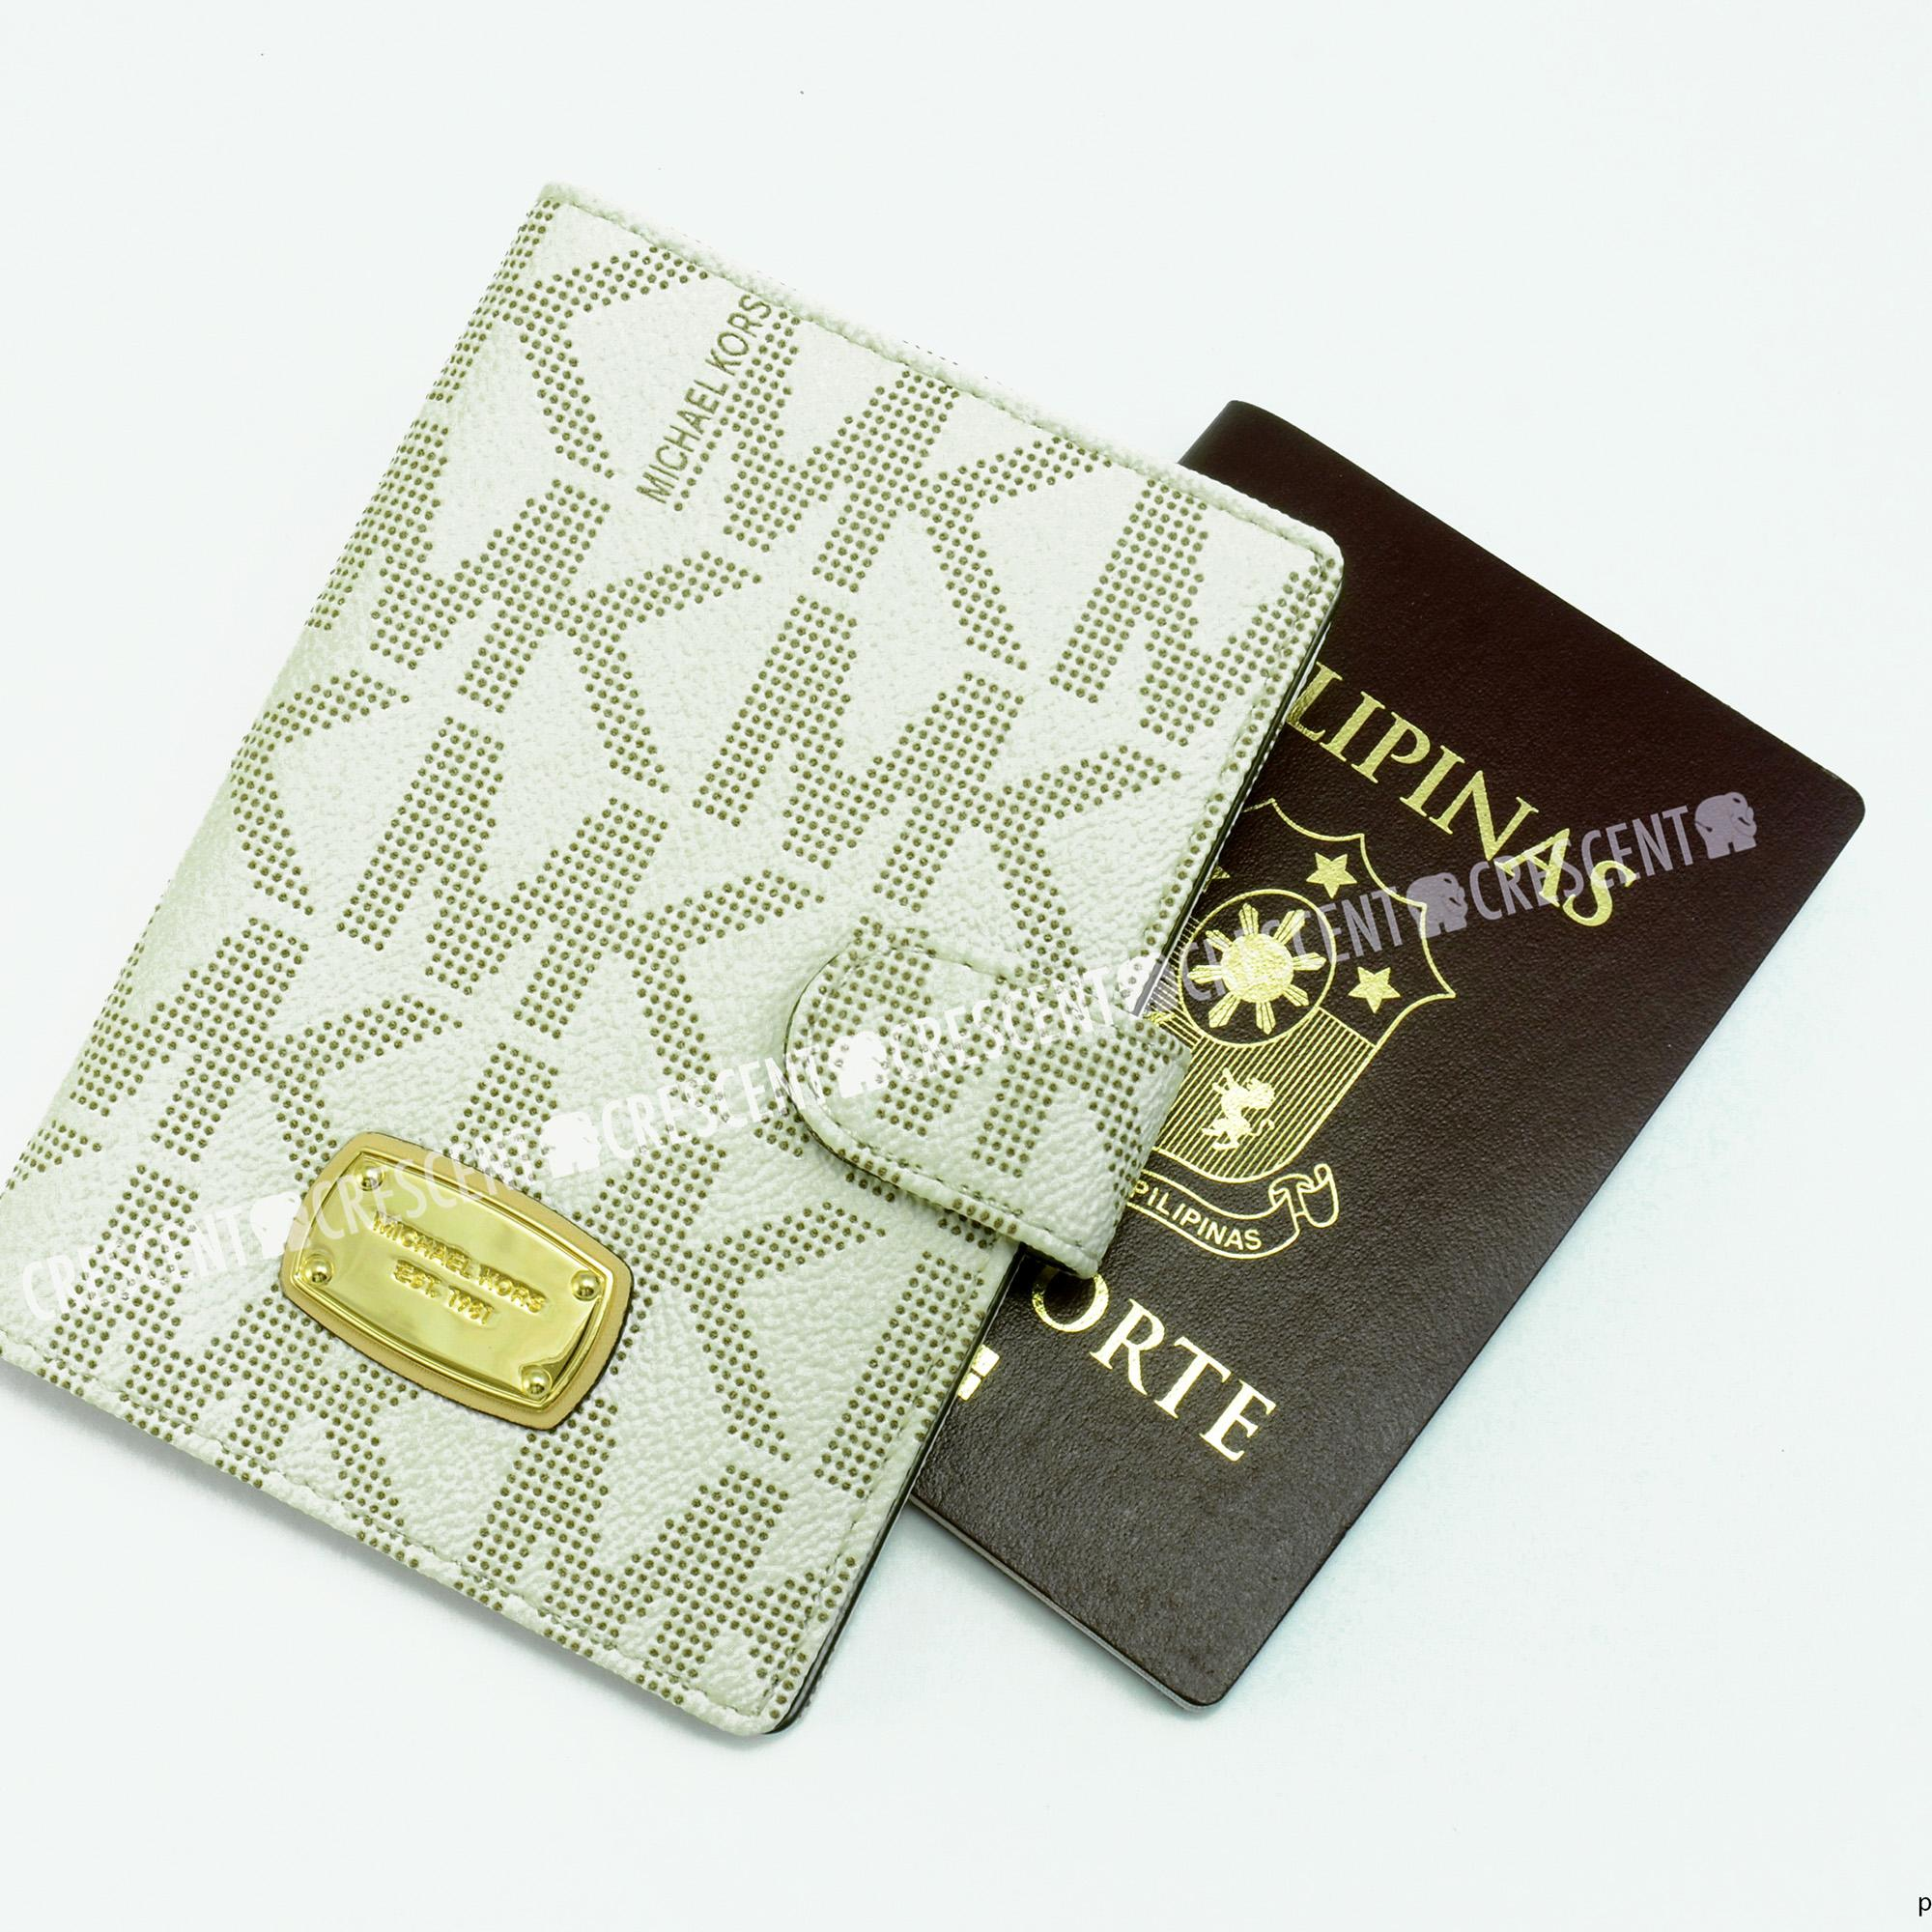 84597c8f084c Passport Covers for sale - Passport Holders online brands, prices ...